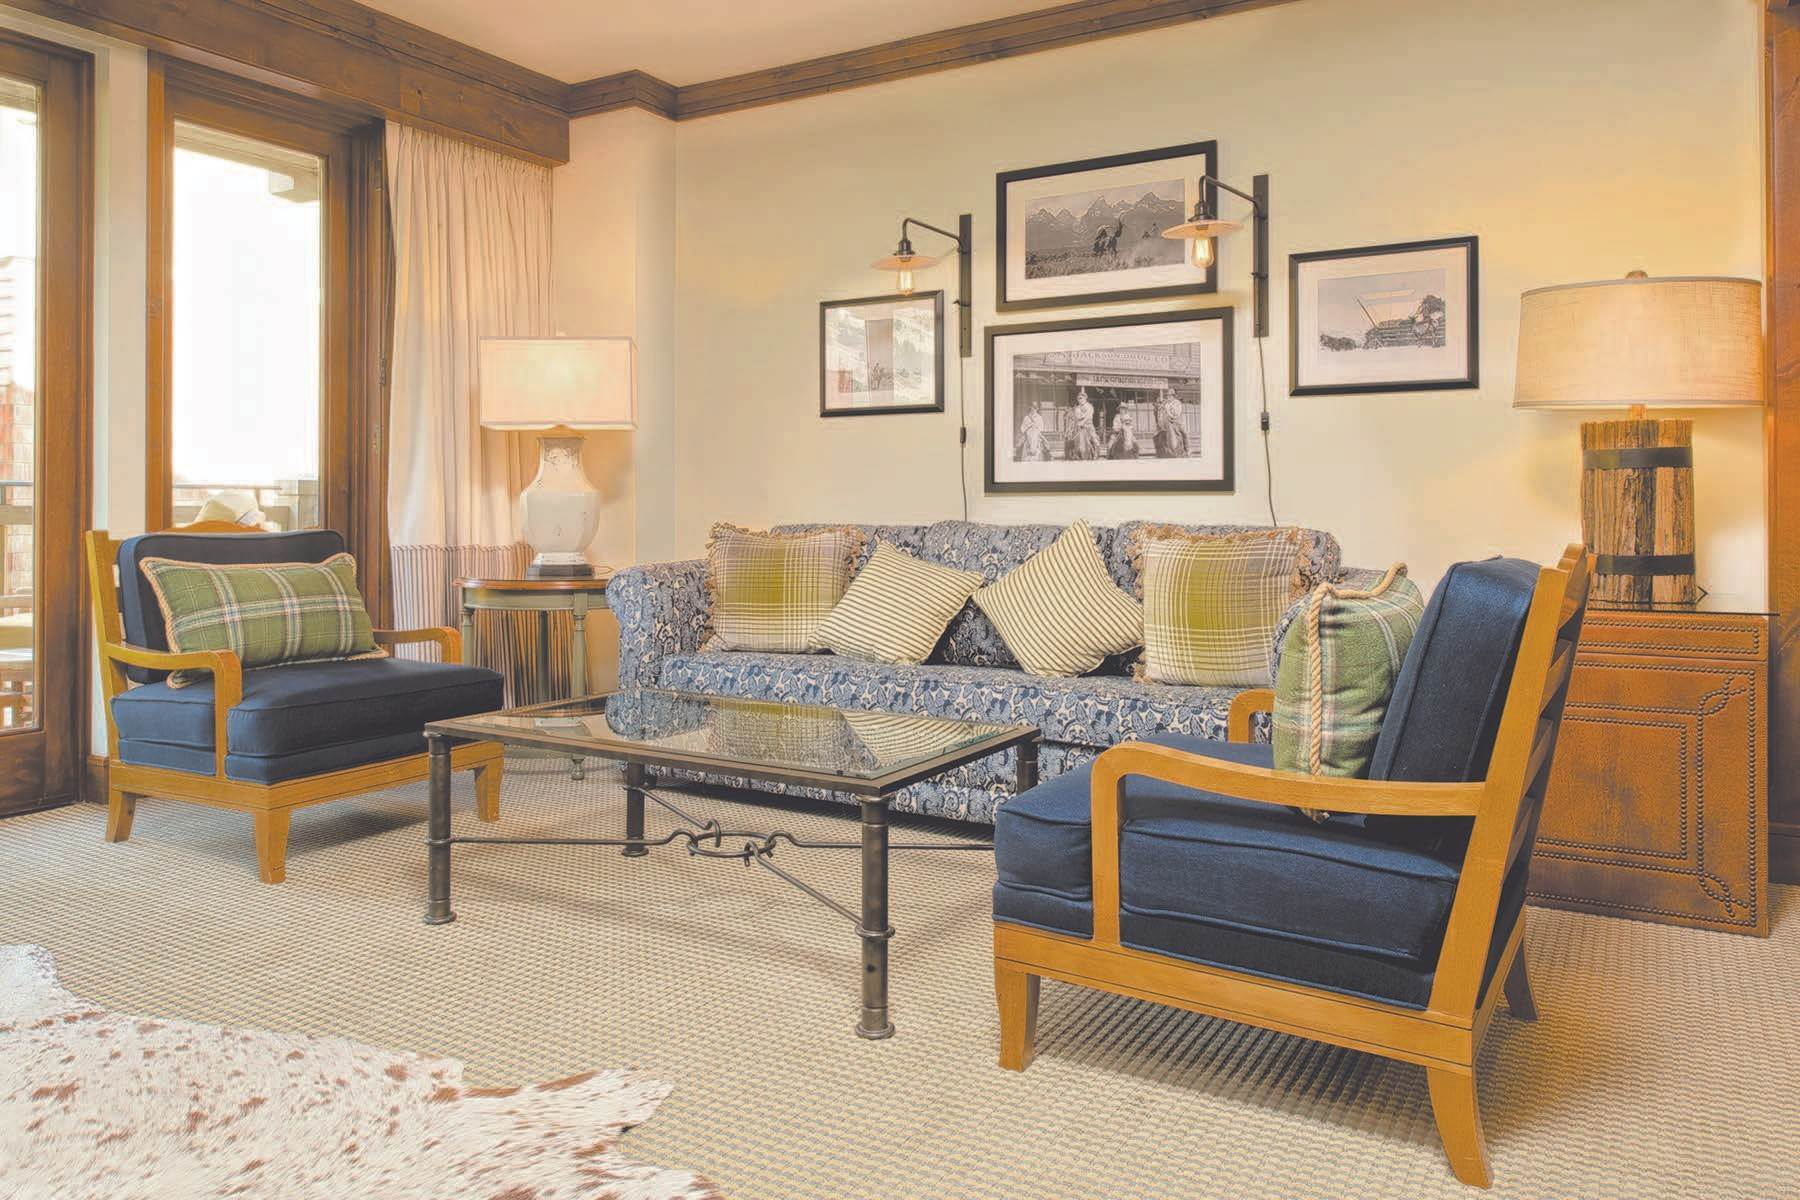 2. Condominiums for Sale at Refreshed Four Seasons Private Residence 7680 N Granite Loop Road, Unit 850 Teton Village, Wyoming 83025 United States